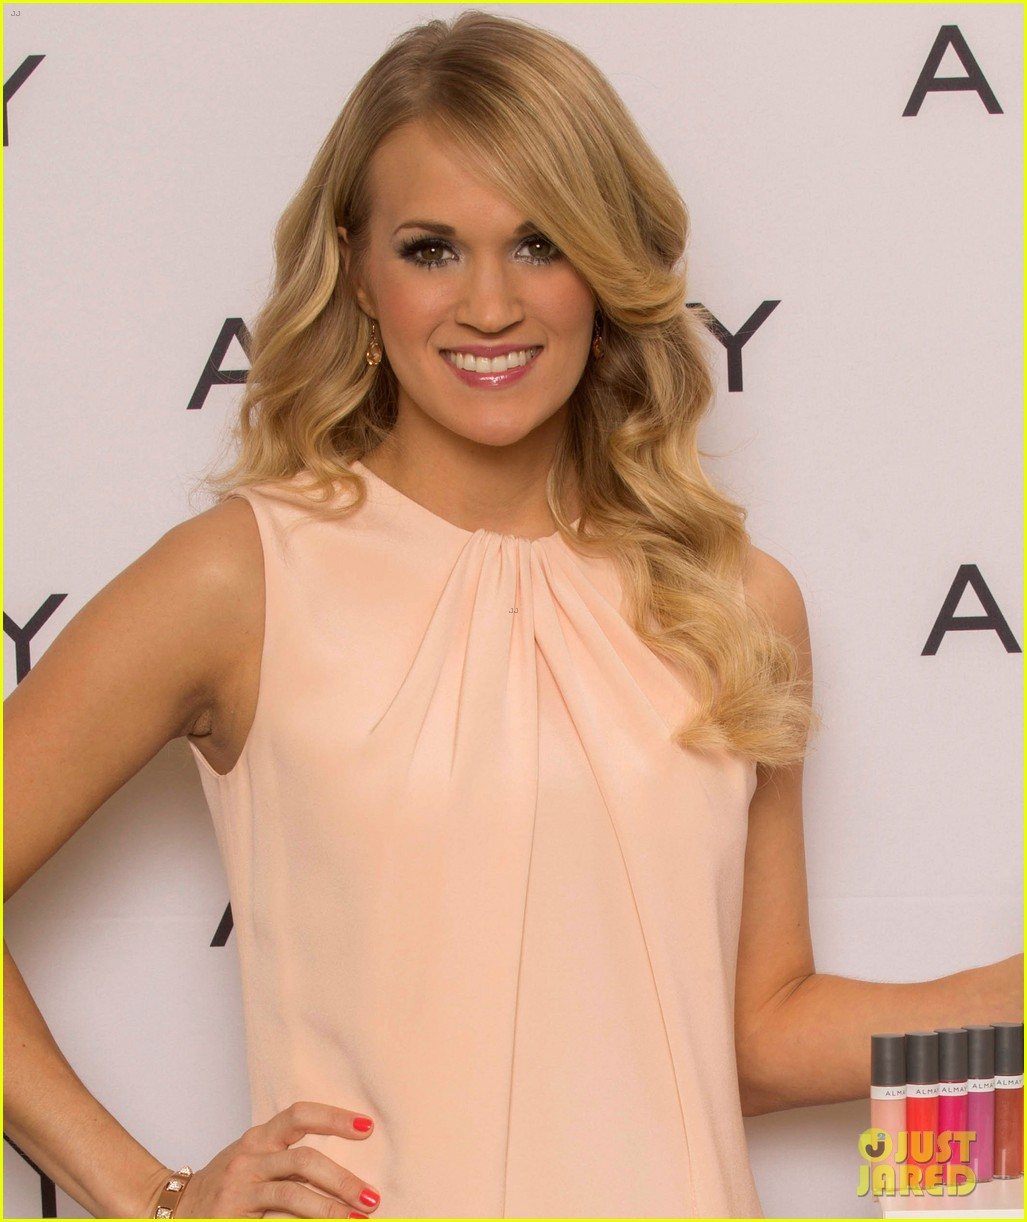 carrie underwood welcomes almay to nashville 013038341